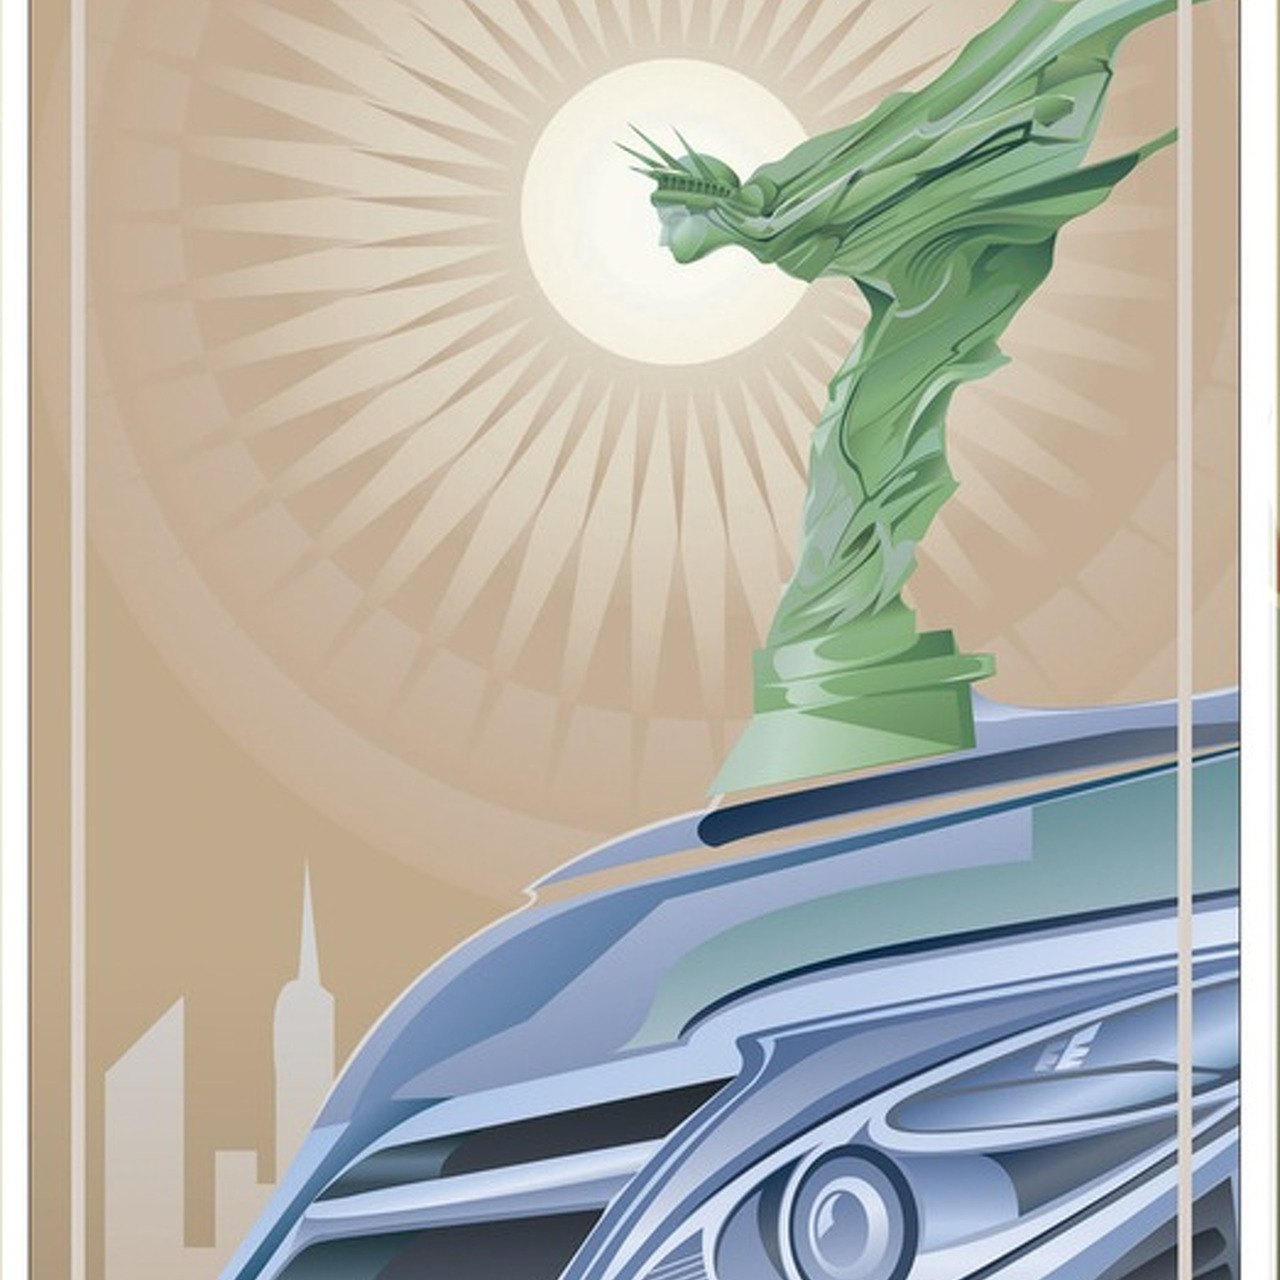 New York Auto Show Artwork Through the Mind of Designer Orlando Arocena